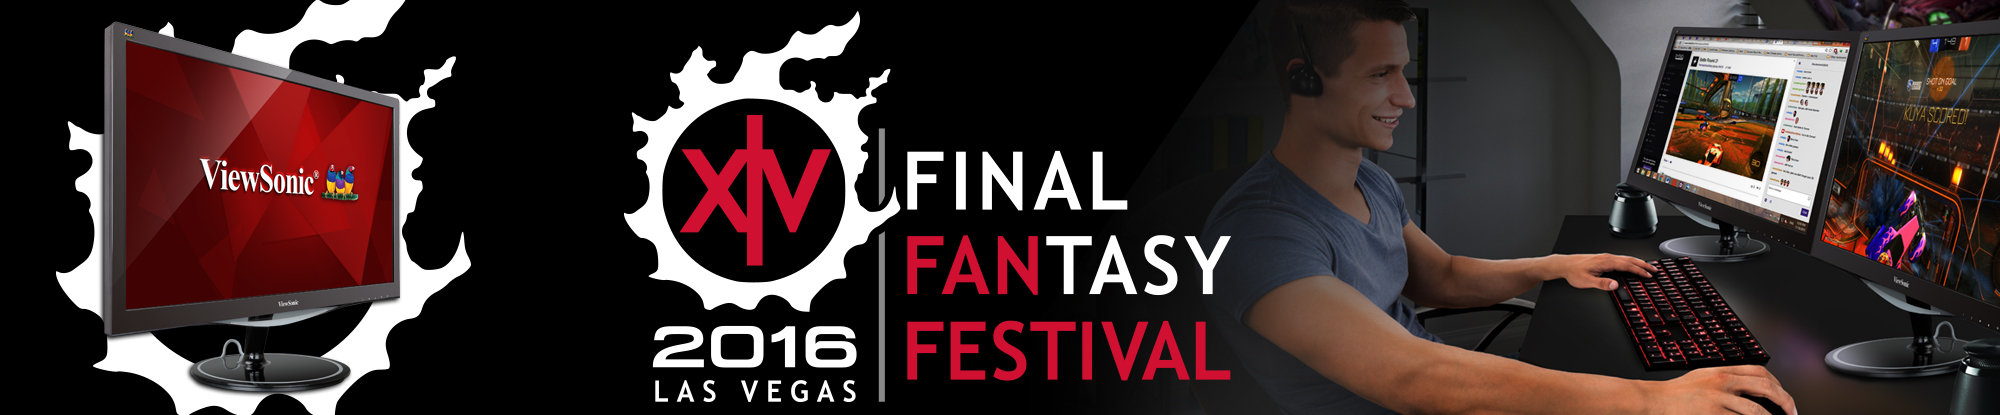 ViewSonic Partners with SQUARE ENIX as Sponsor of Final Fantasy XIV Fan Festival 2016